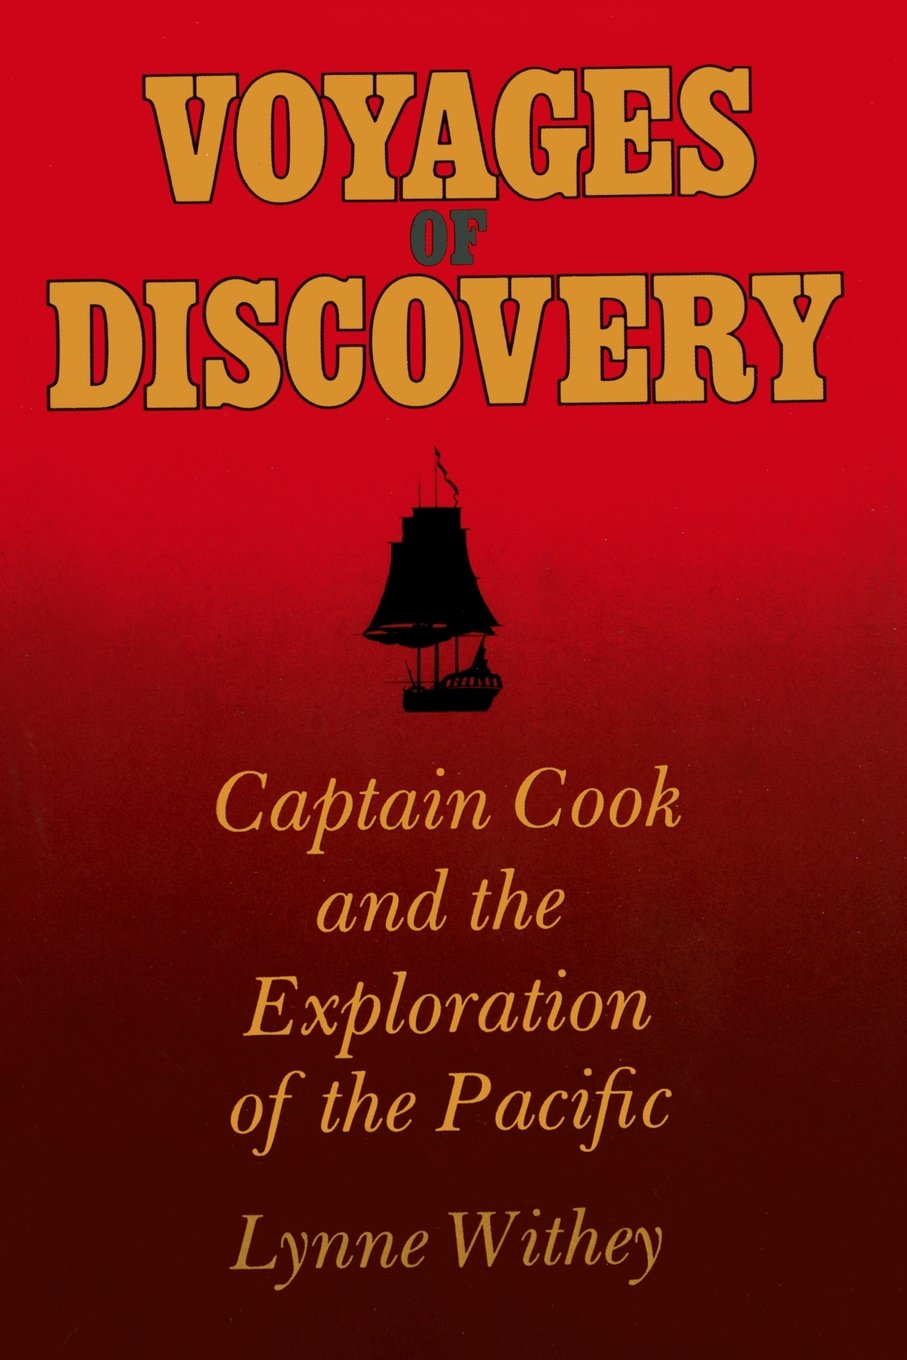 Voyages of Discovery: Captain Cook and the Exploration of the Pacific